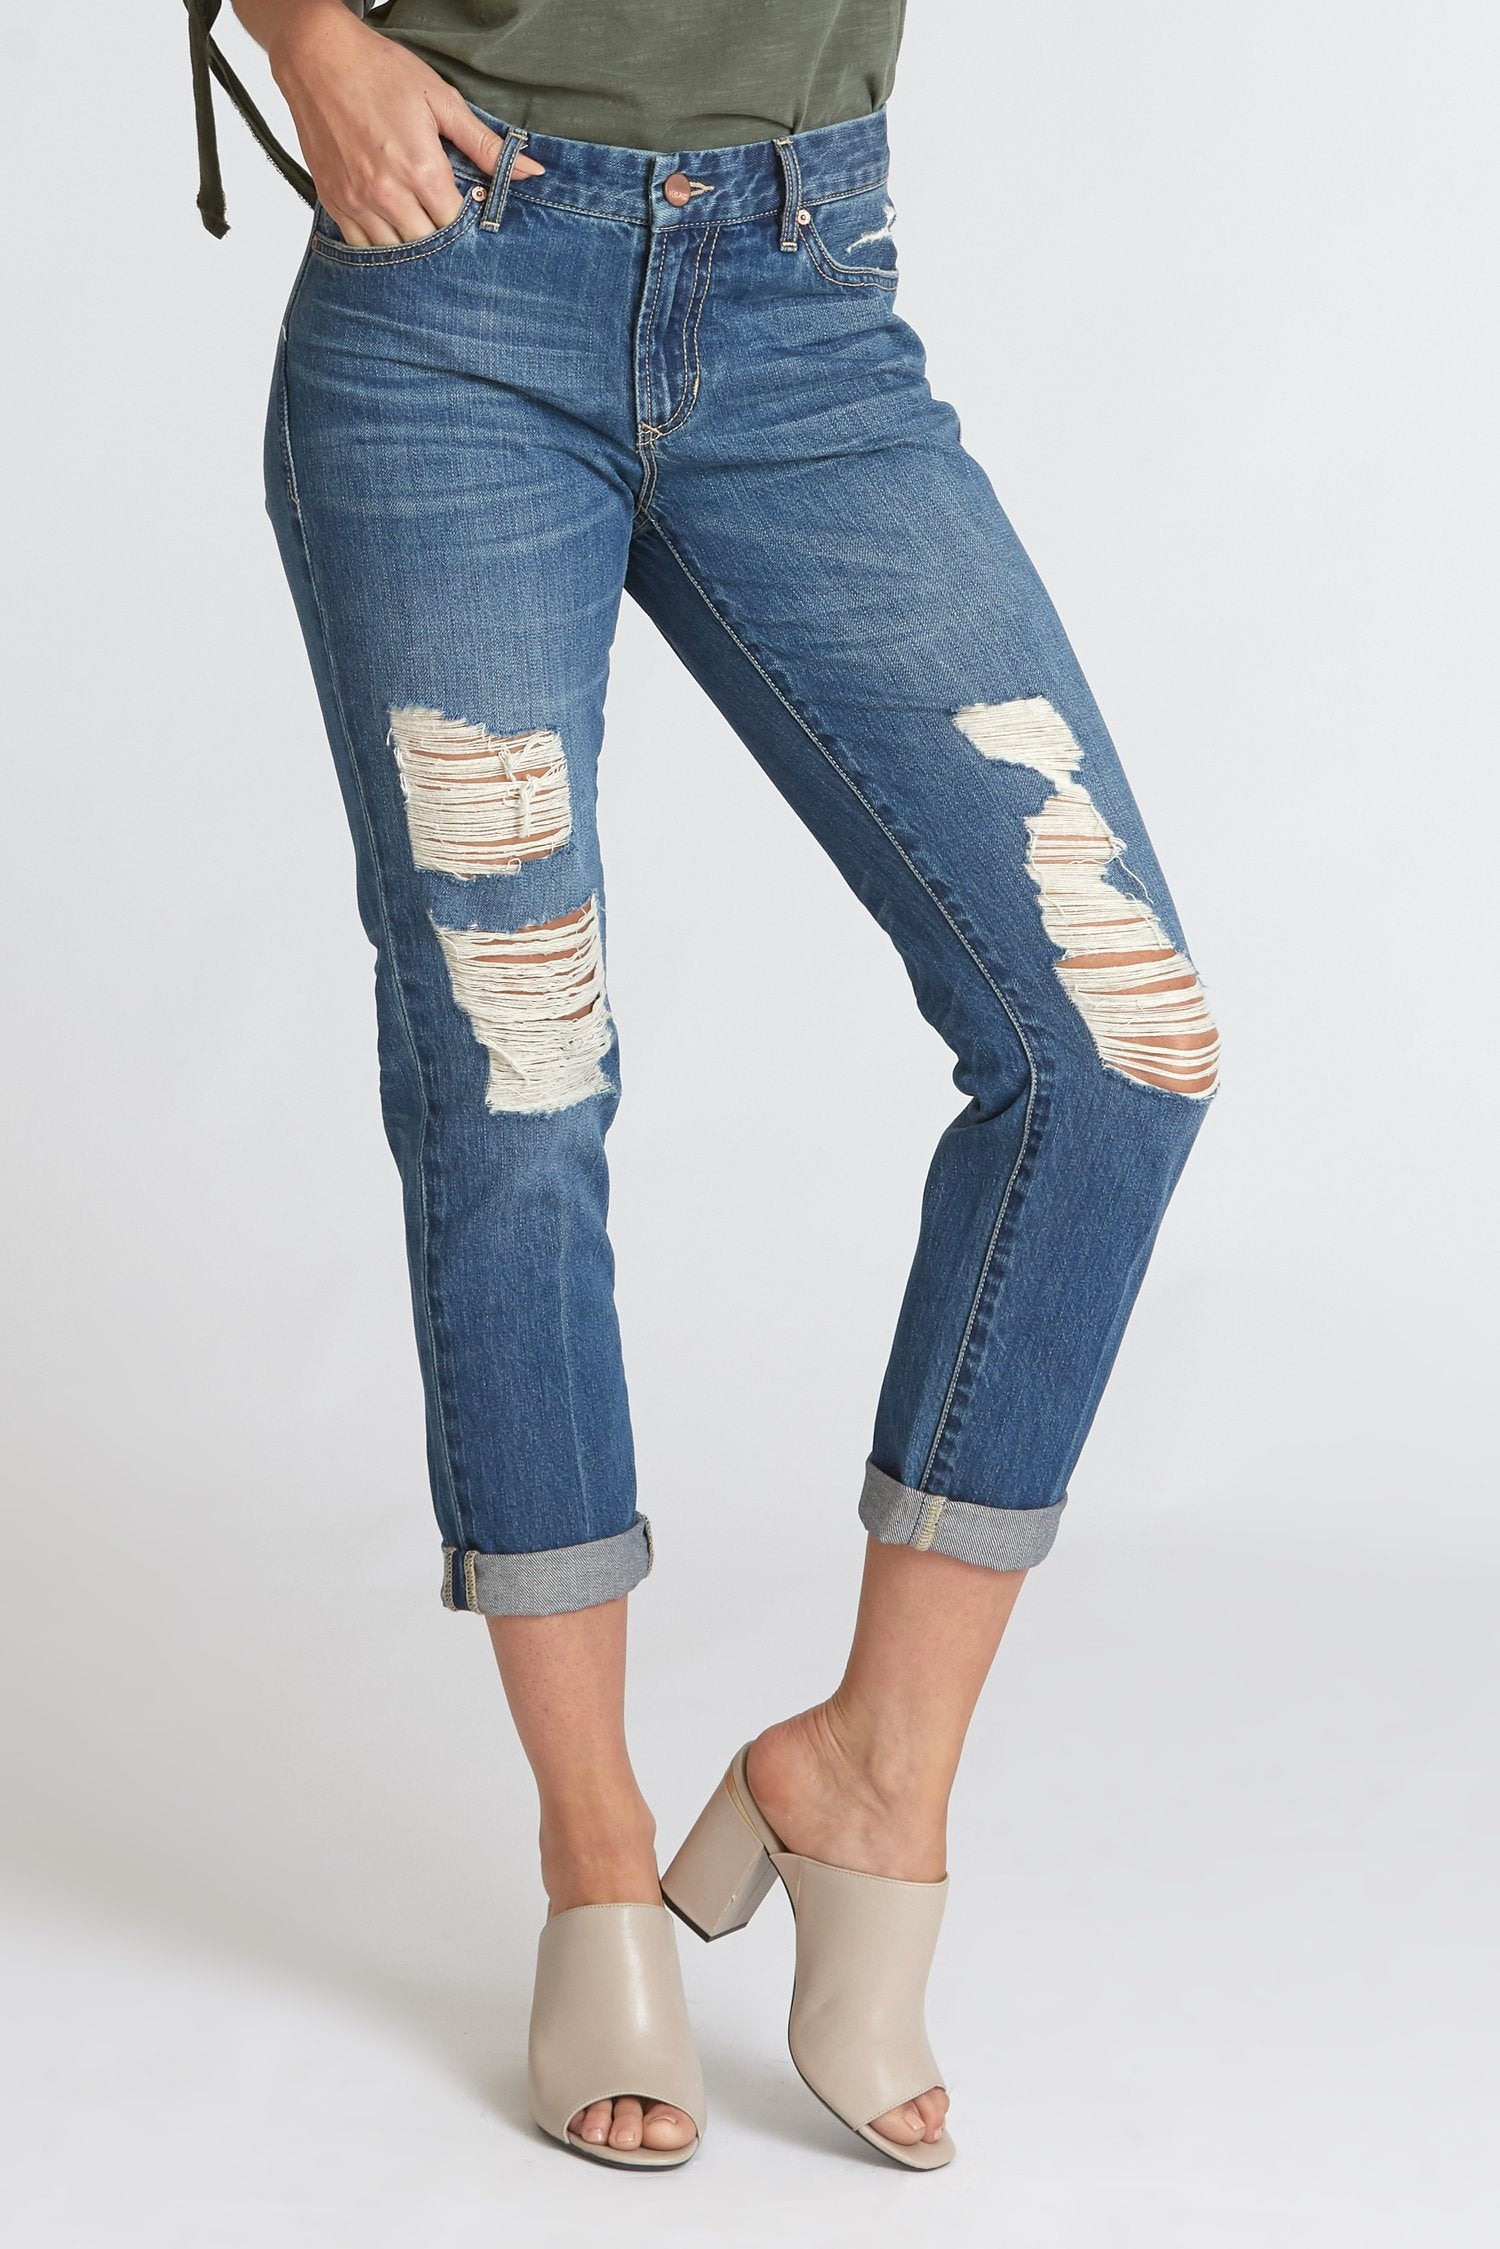 Dear John Madison Girlfriend Jean in Lavish